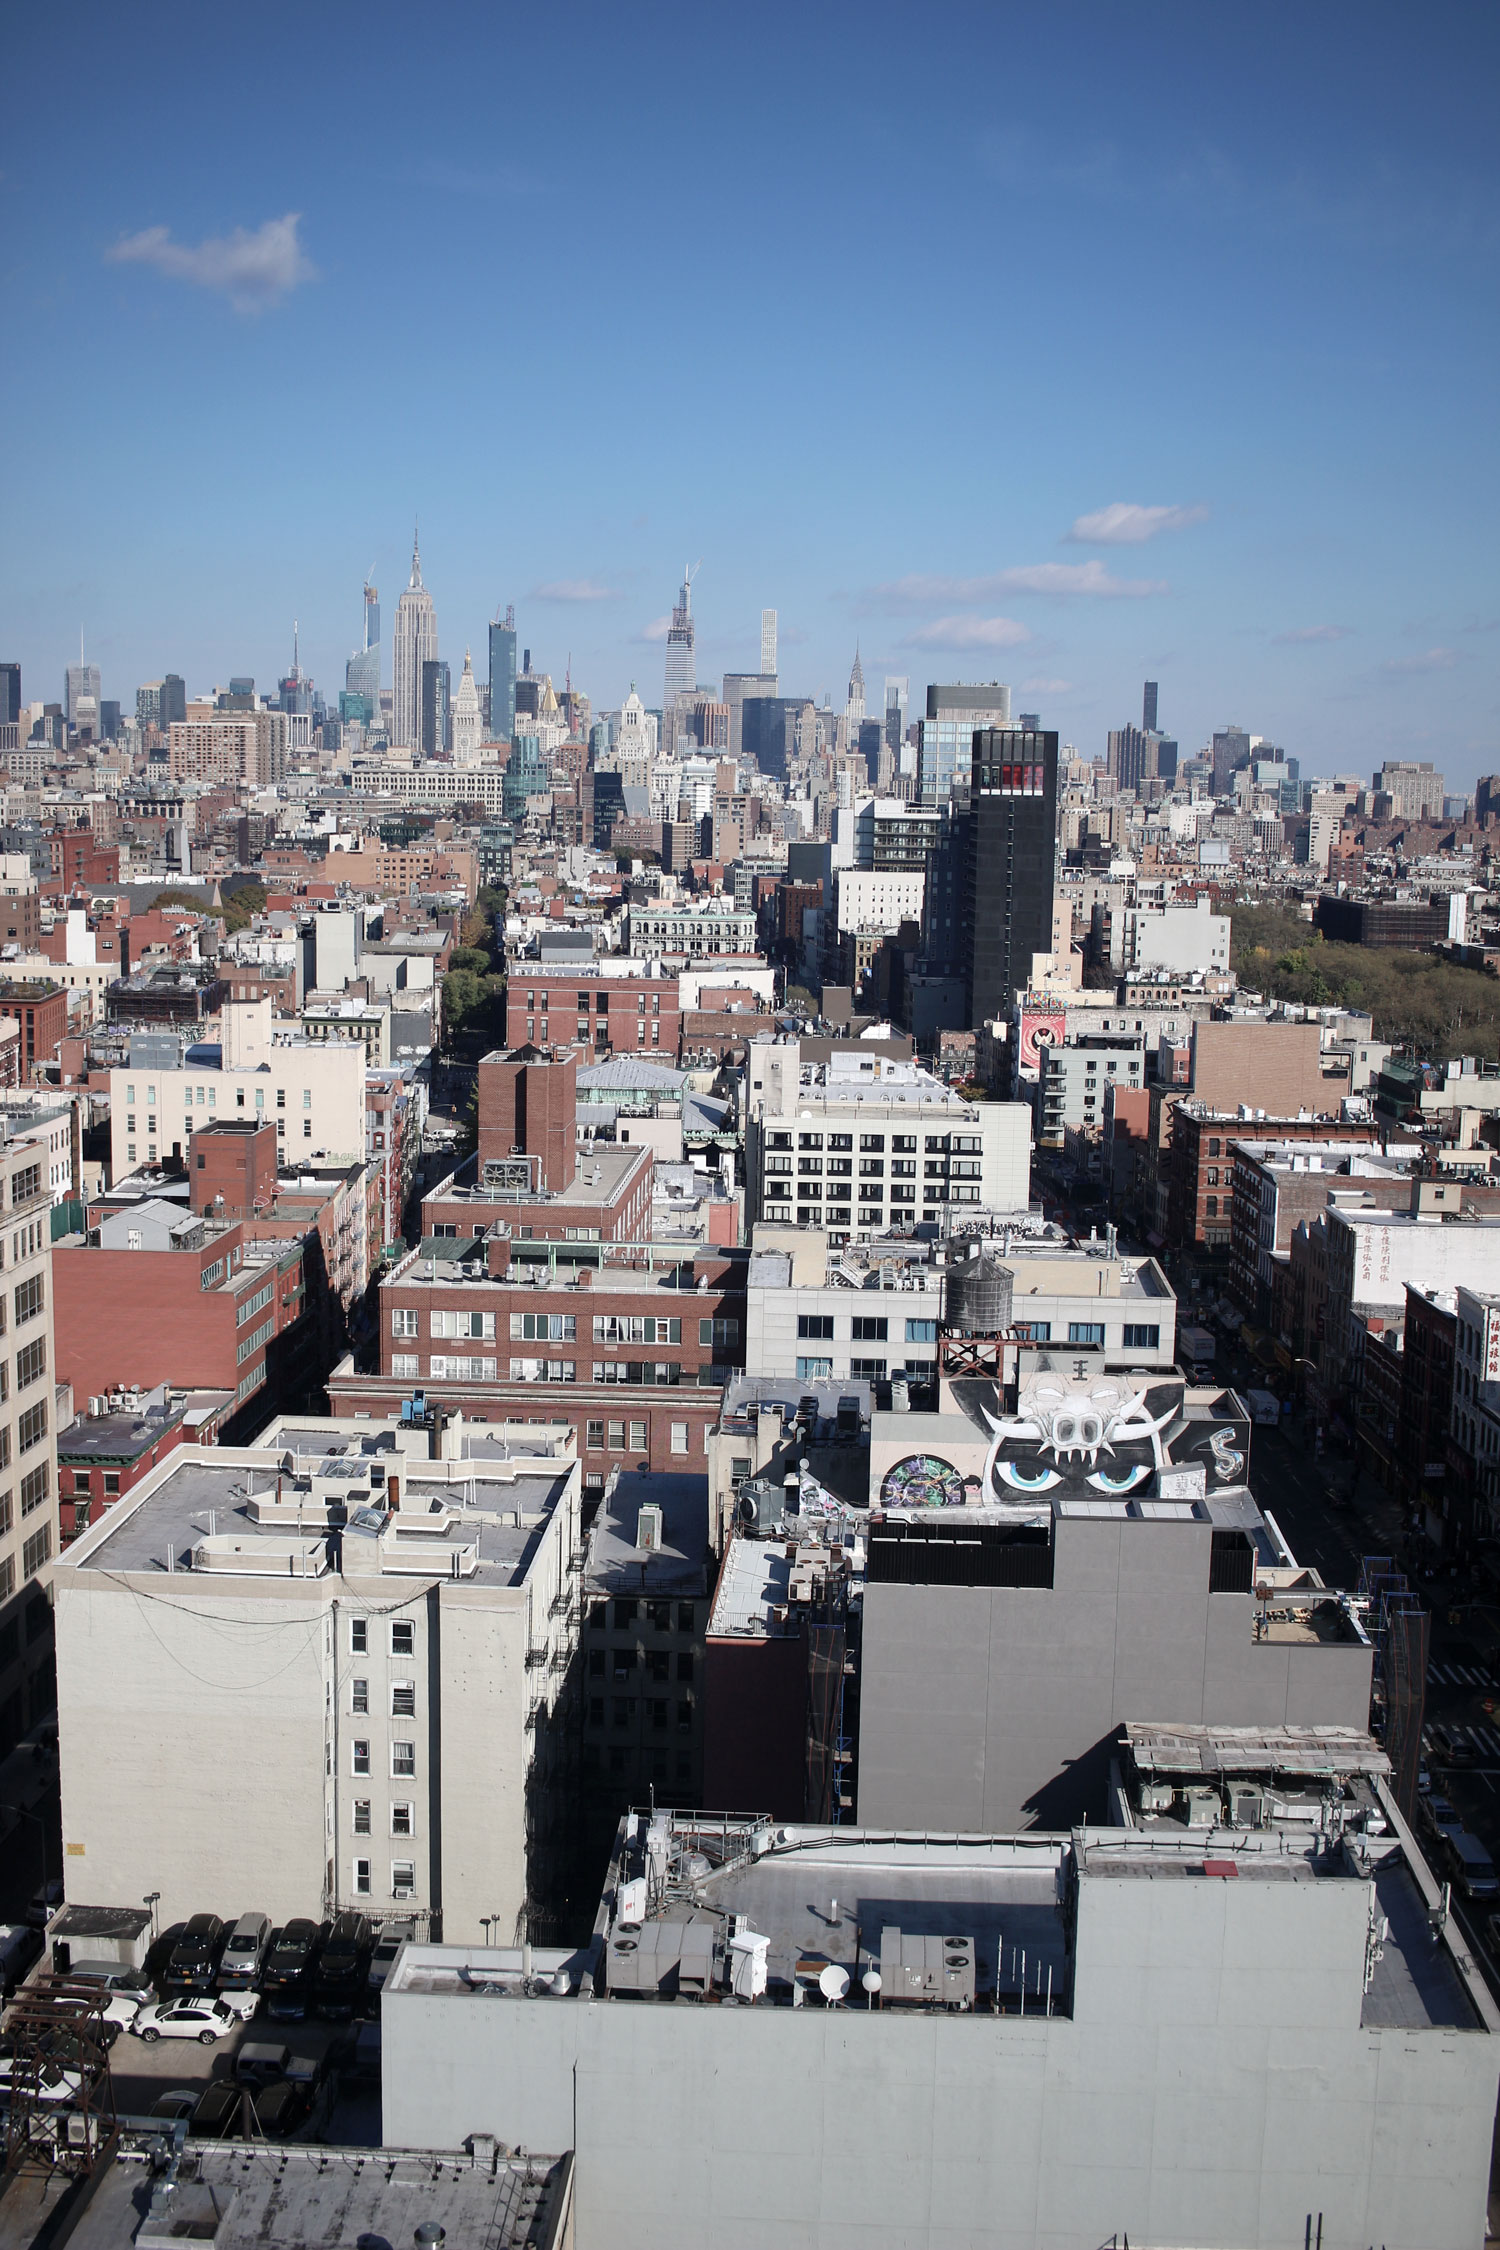 Hotel-50-Bowery-New-York-Manhattan-Review-Room-Travel-Blogger-12